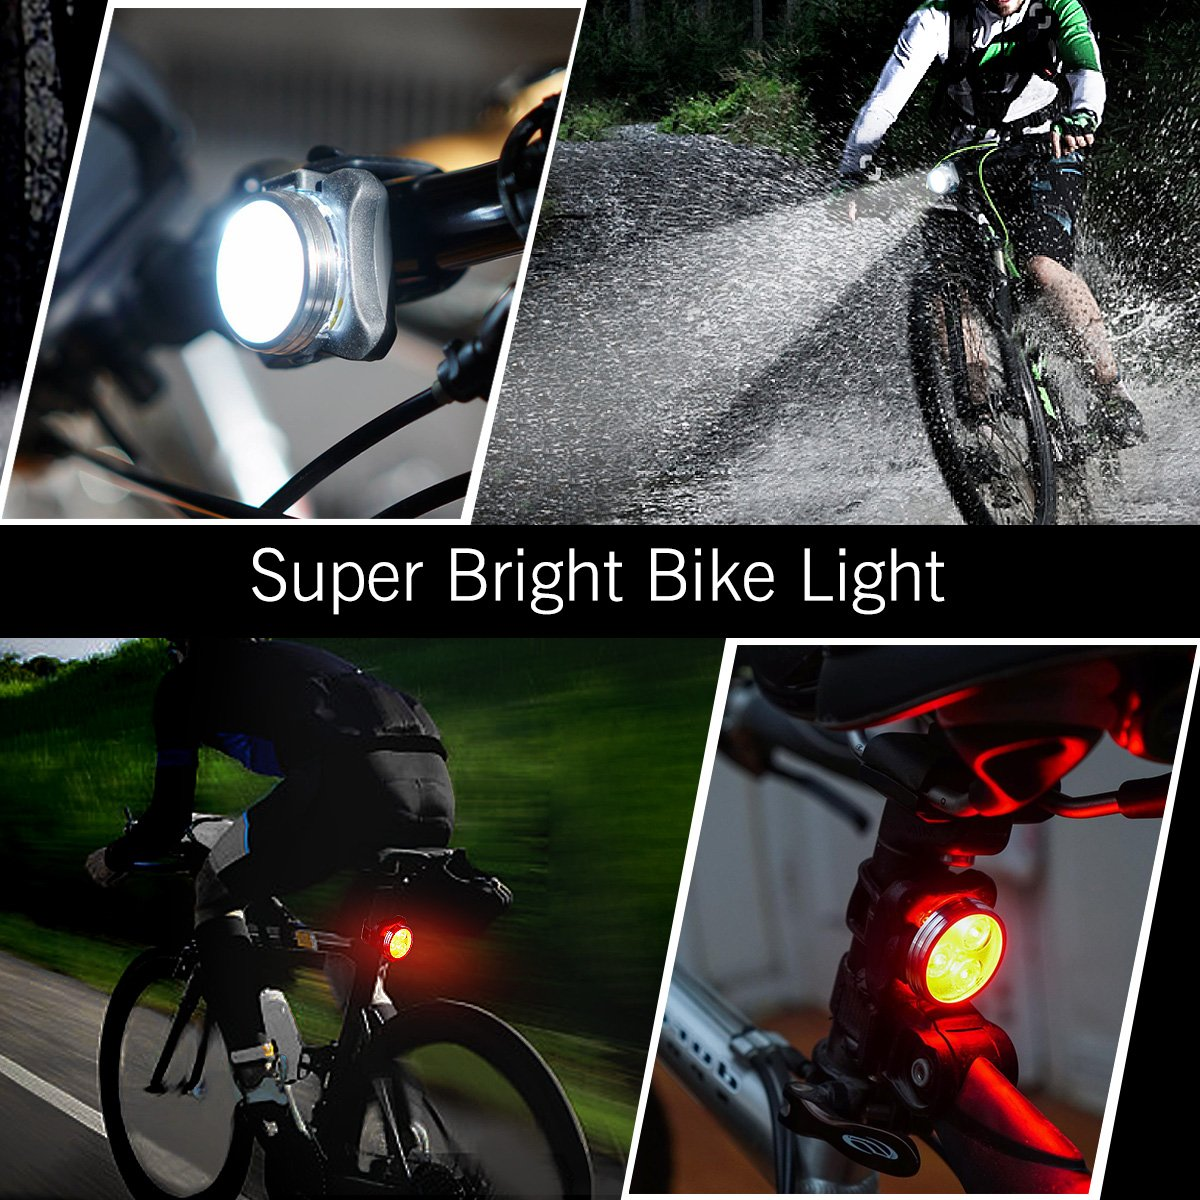 SOKLIT USB Rechargeable Bike Light Front and Rear Waterproof IPX4 Super Bright Bicycle LED Light Set 120 Lumen with 650mah Lithium Battery, 4 Light Mode Options, Including 6 Strap and 2 USB Cables by SOKLIT (Image #8)